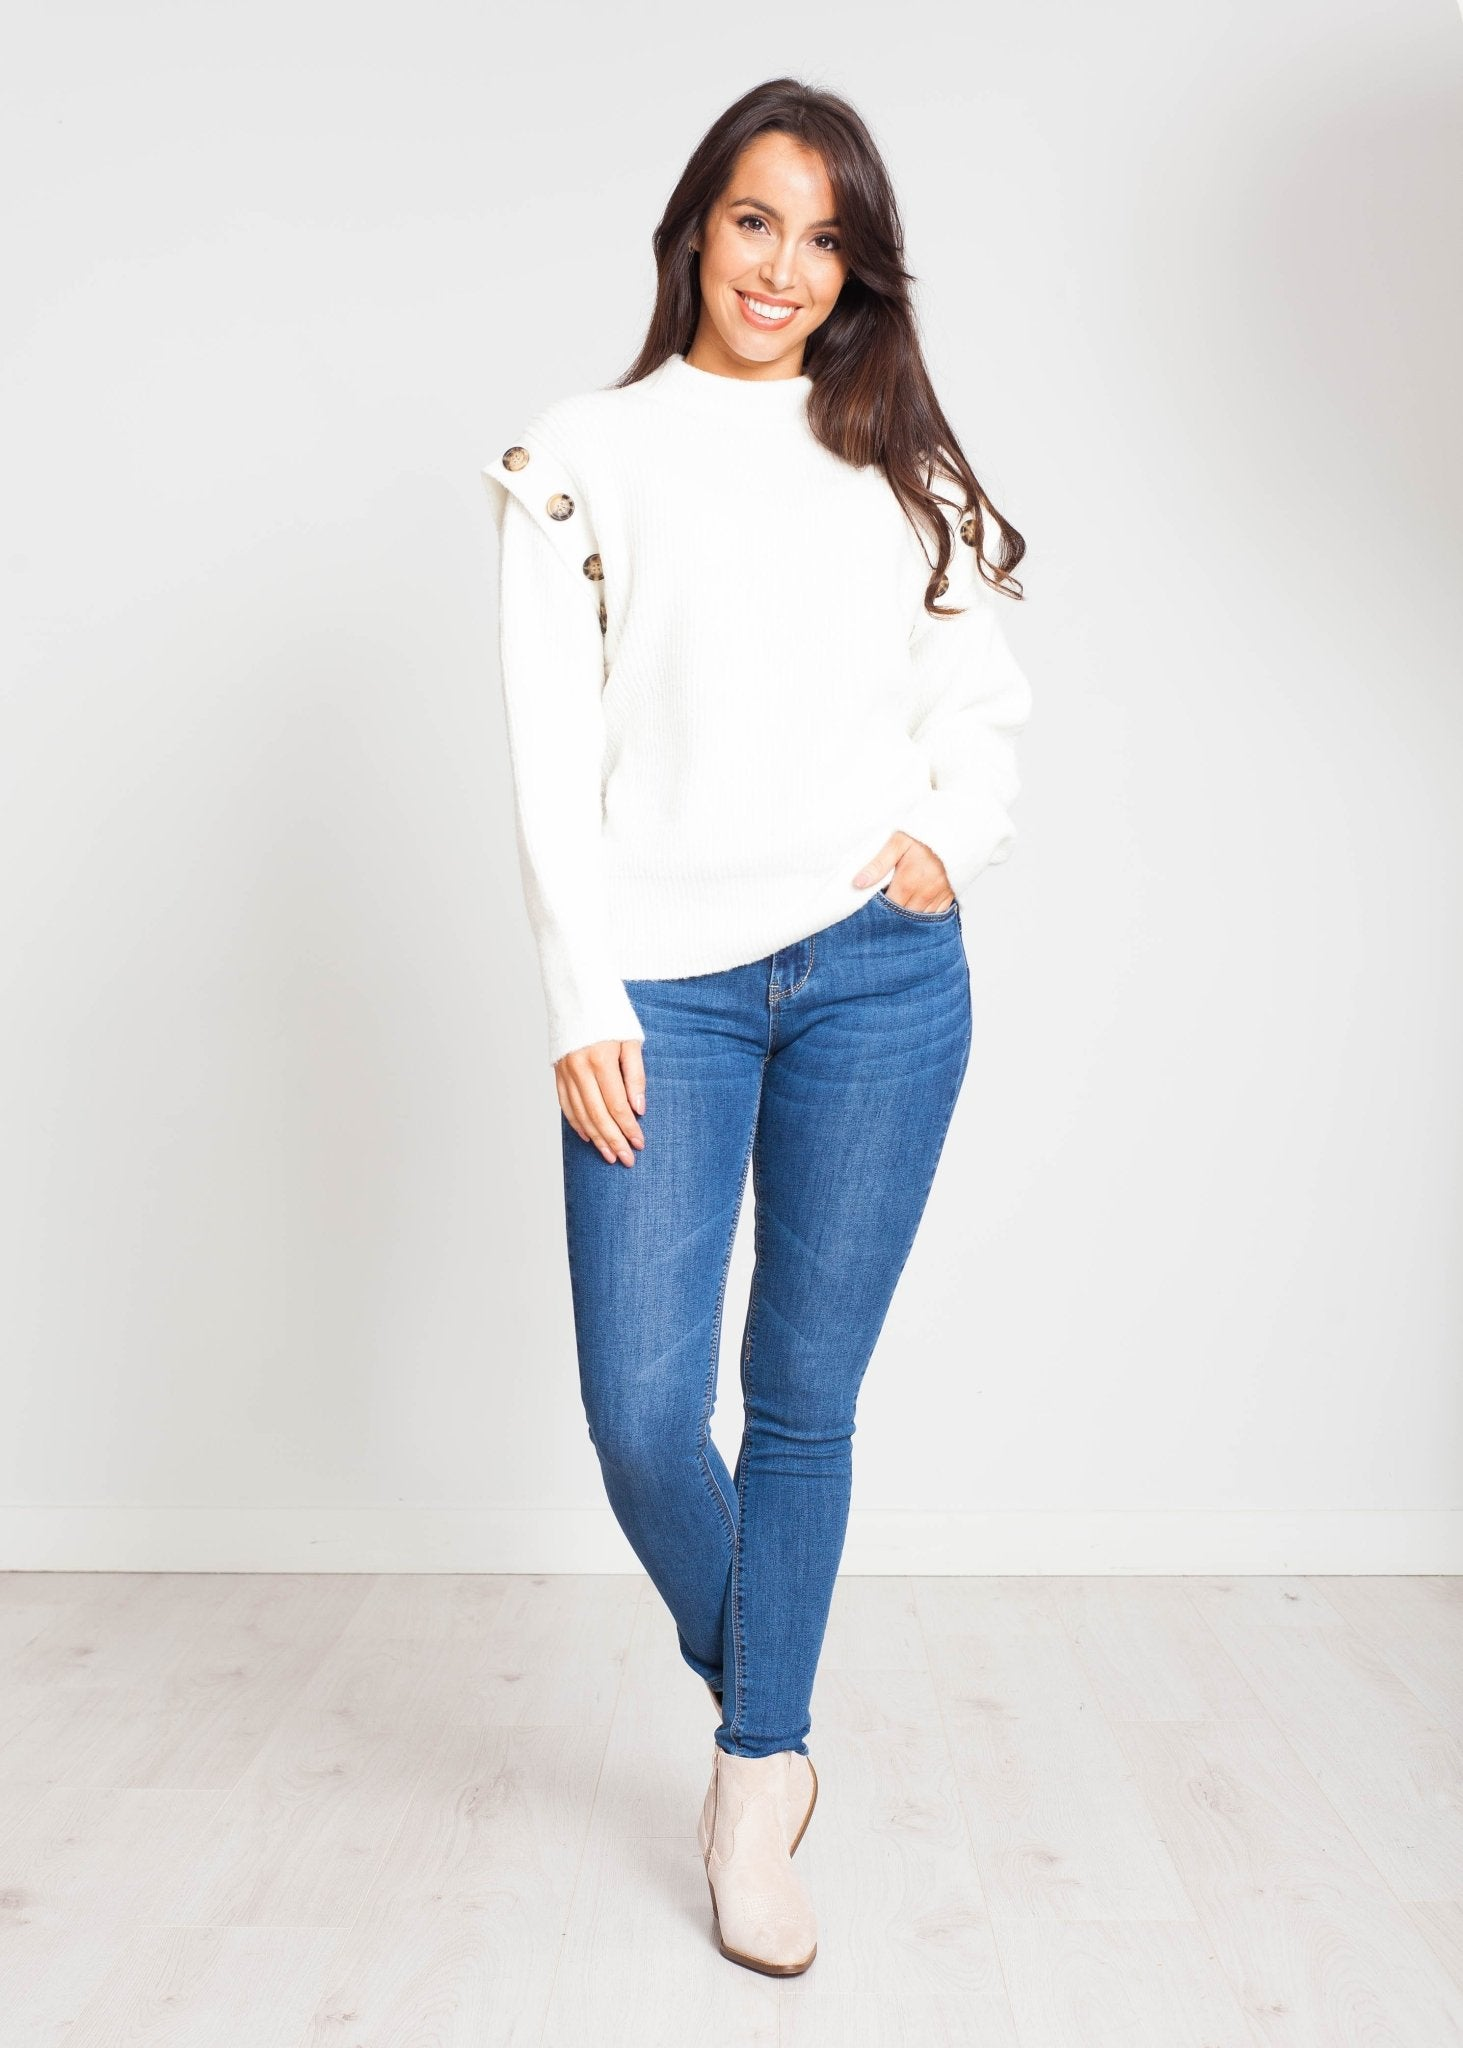 Priya Jumper With Buttons In Winter White - The Walk in Wardrobe